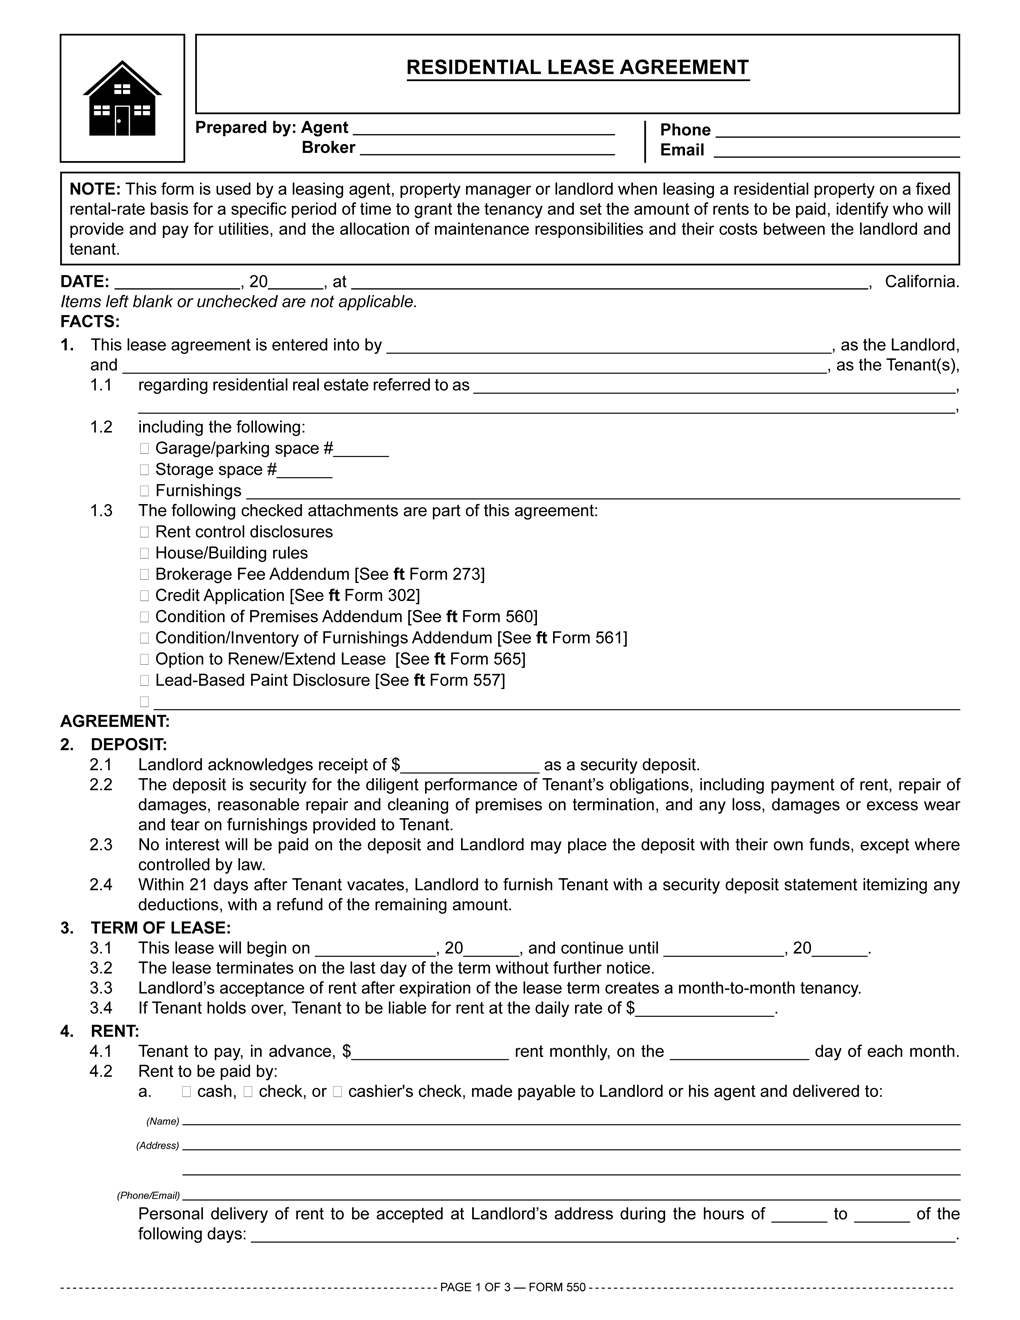 Residential Lease Agreement Rpi Form 550 First Tuesday Journal